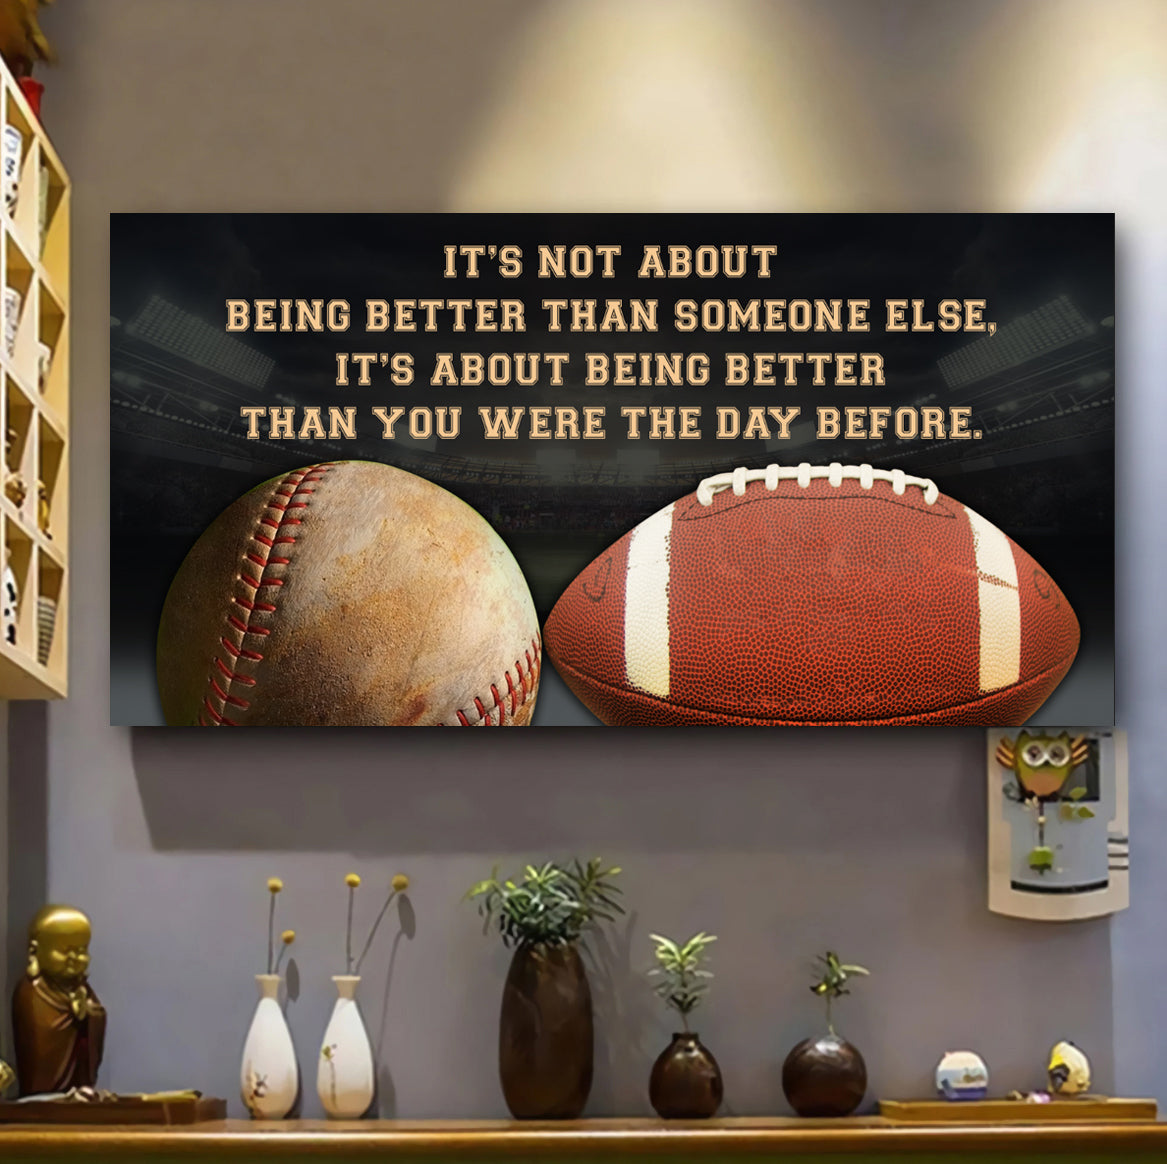 (QH666) Customizable baseball, football Poster canvas - It's not about - FREE SHIPPING ON ORDERS OVER $75